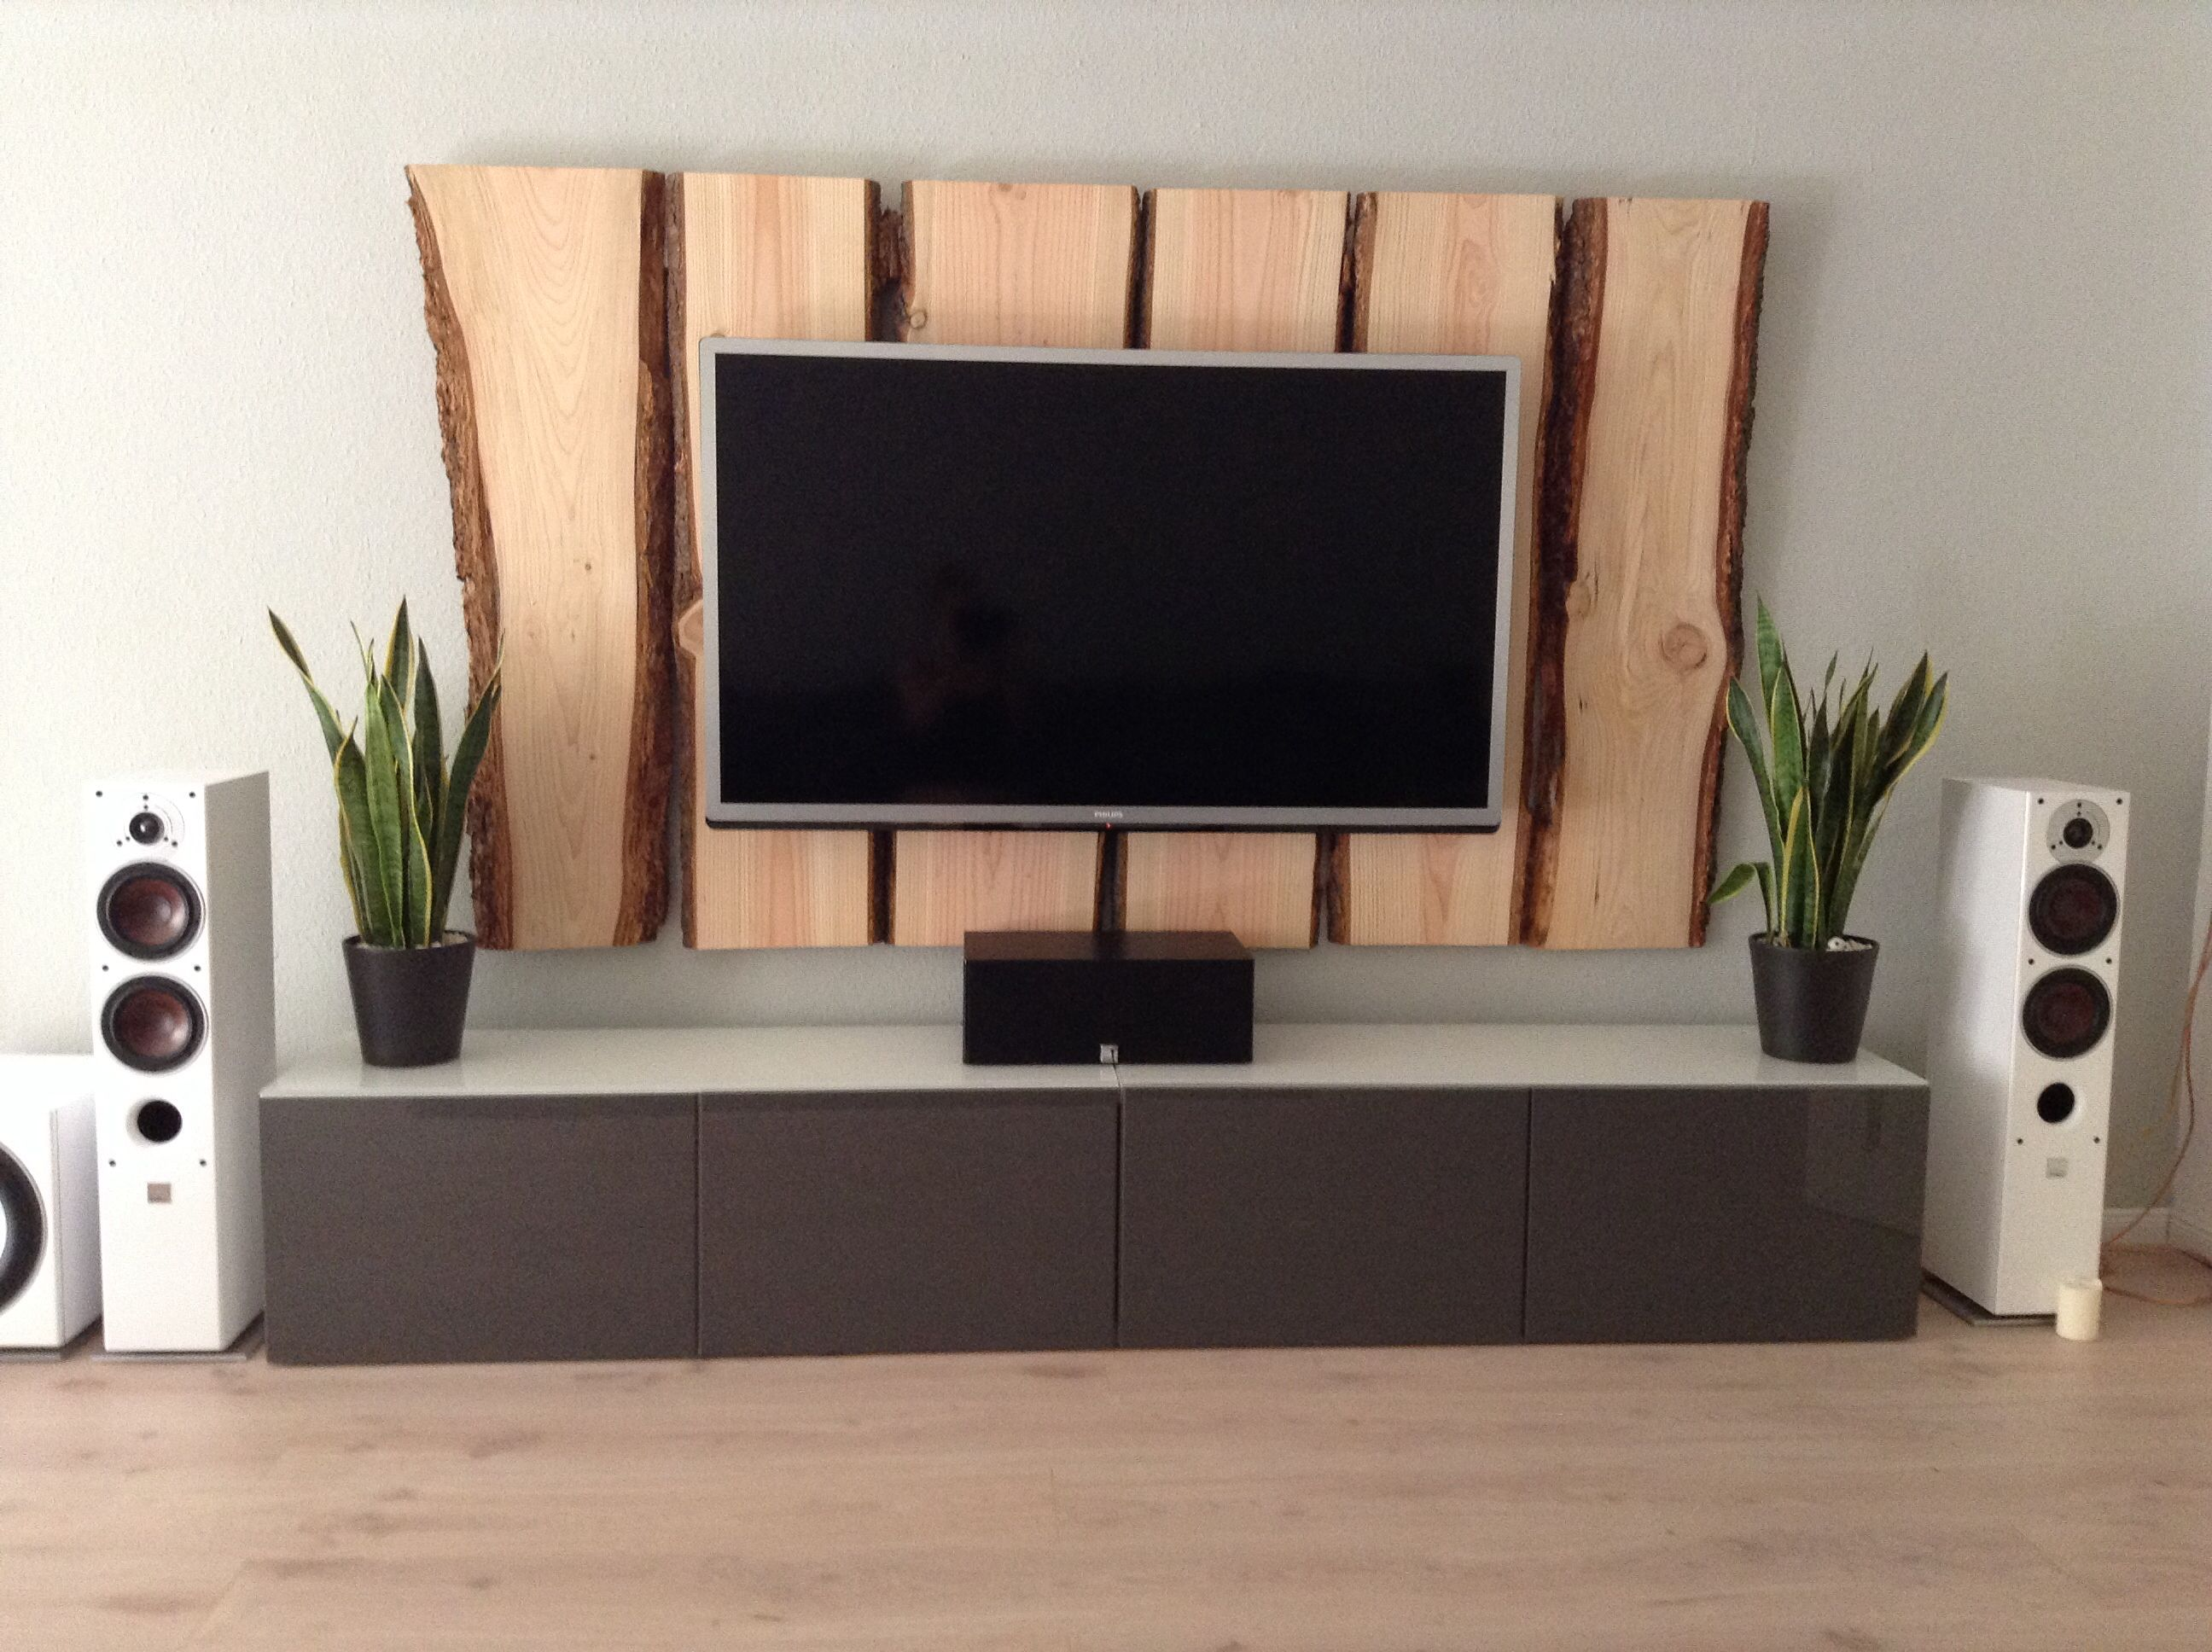 Holz TV Wand - TV Wall Wood | Tv wand holz, Tv wand ...